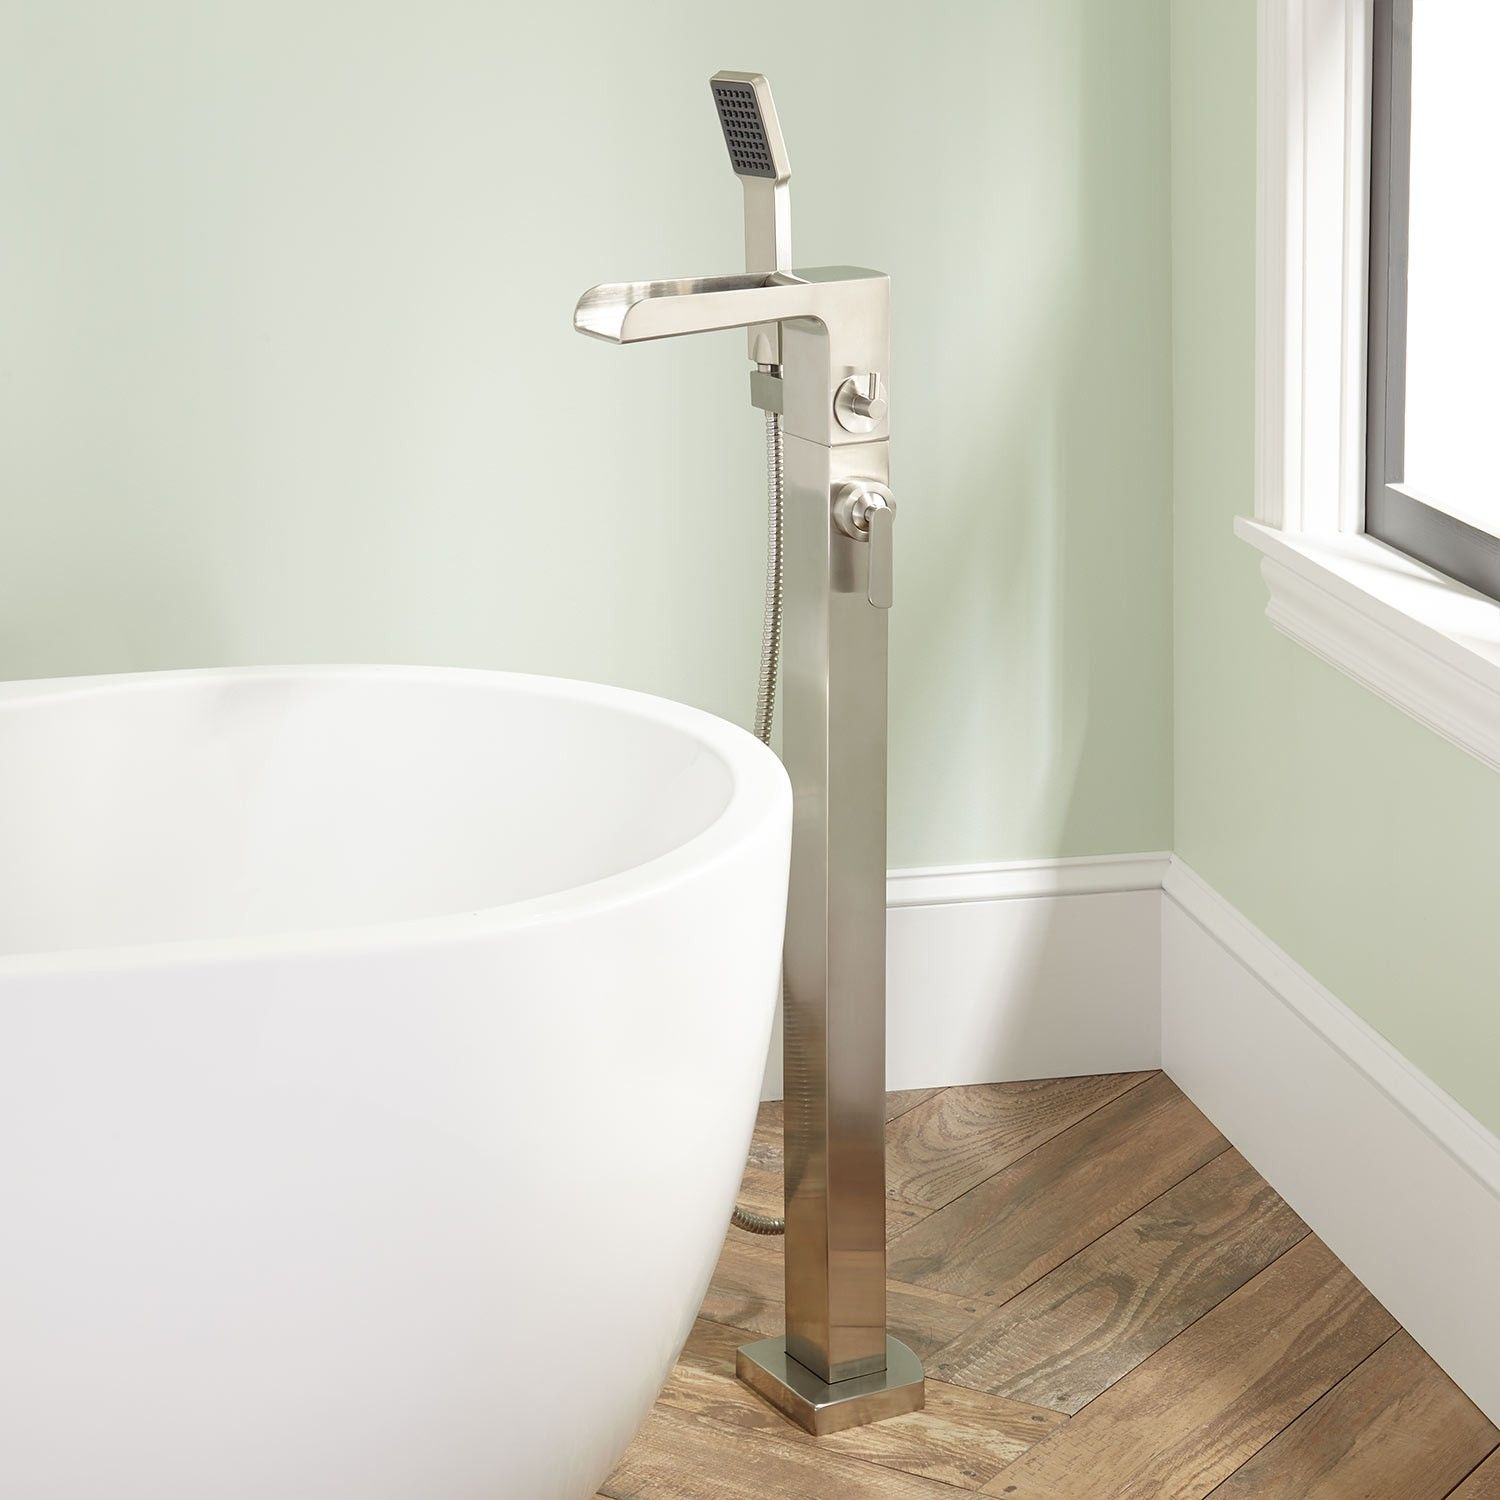 Dario Freestanding Waterfall Tub Faucet with Hand Shower   Faucet ...